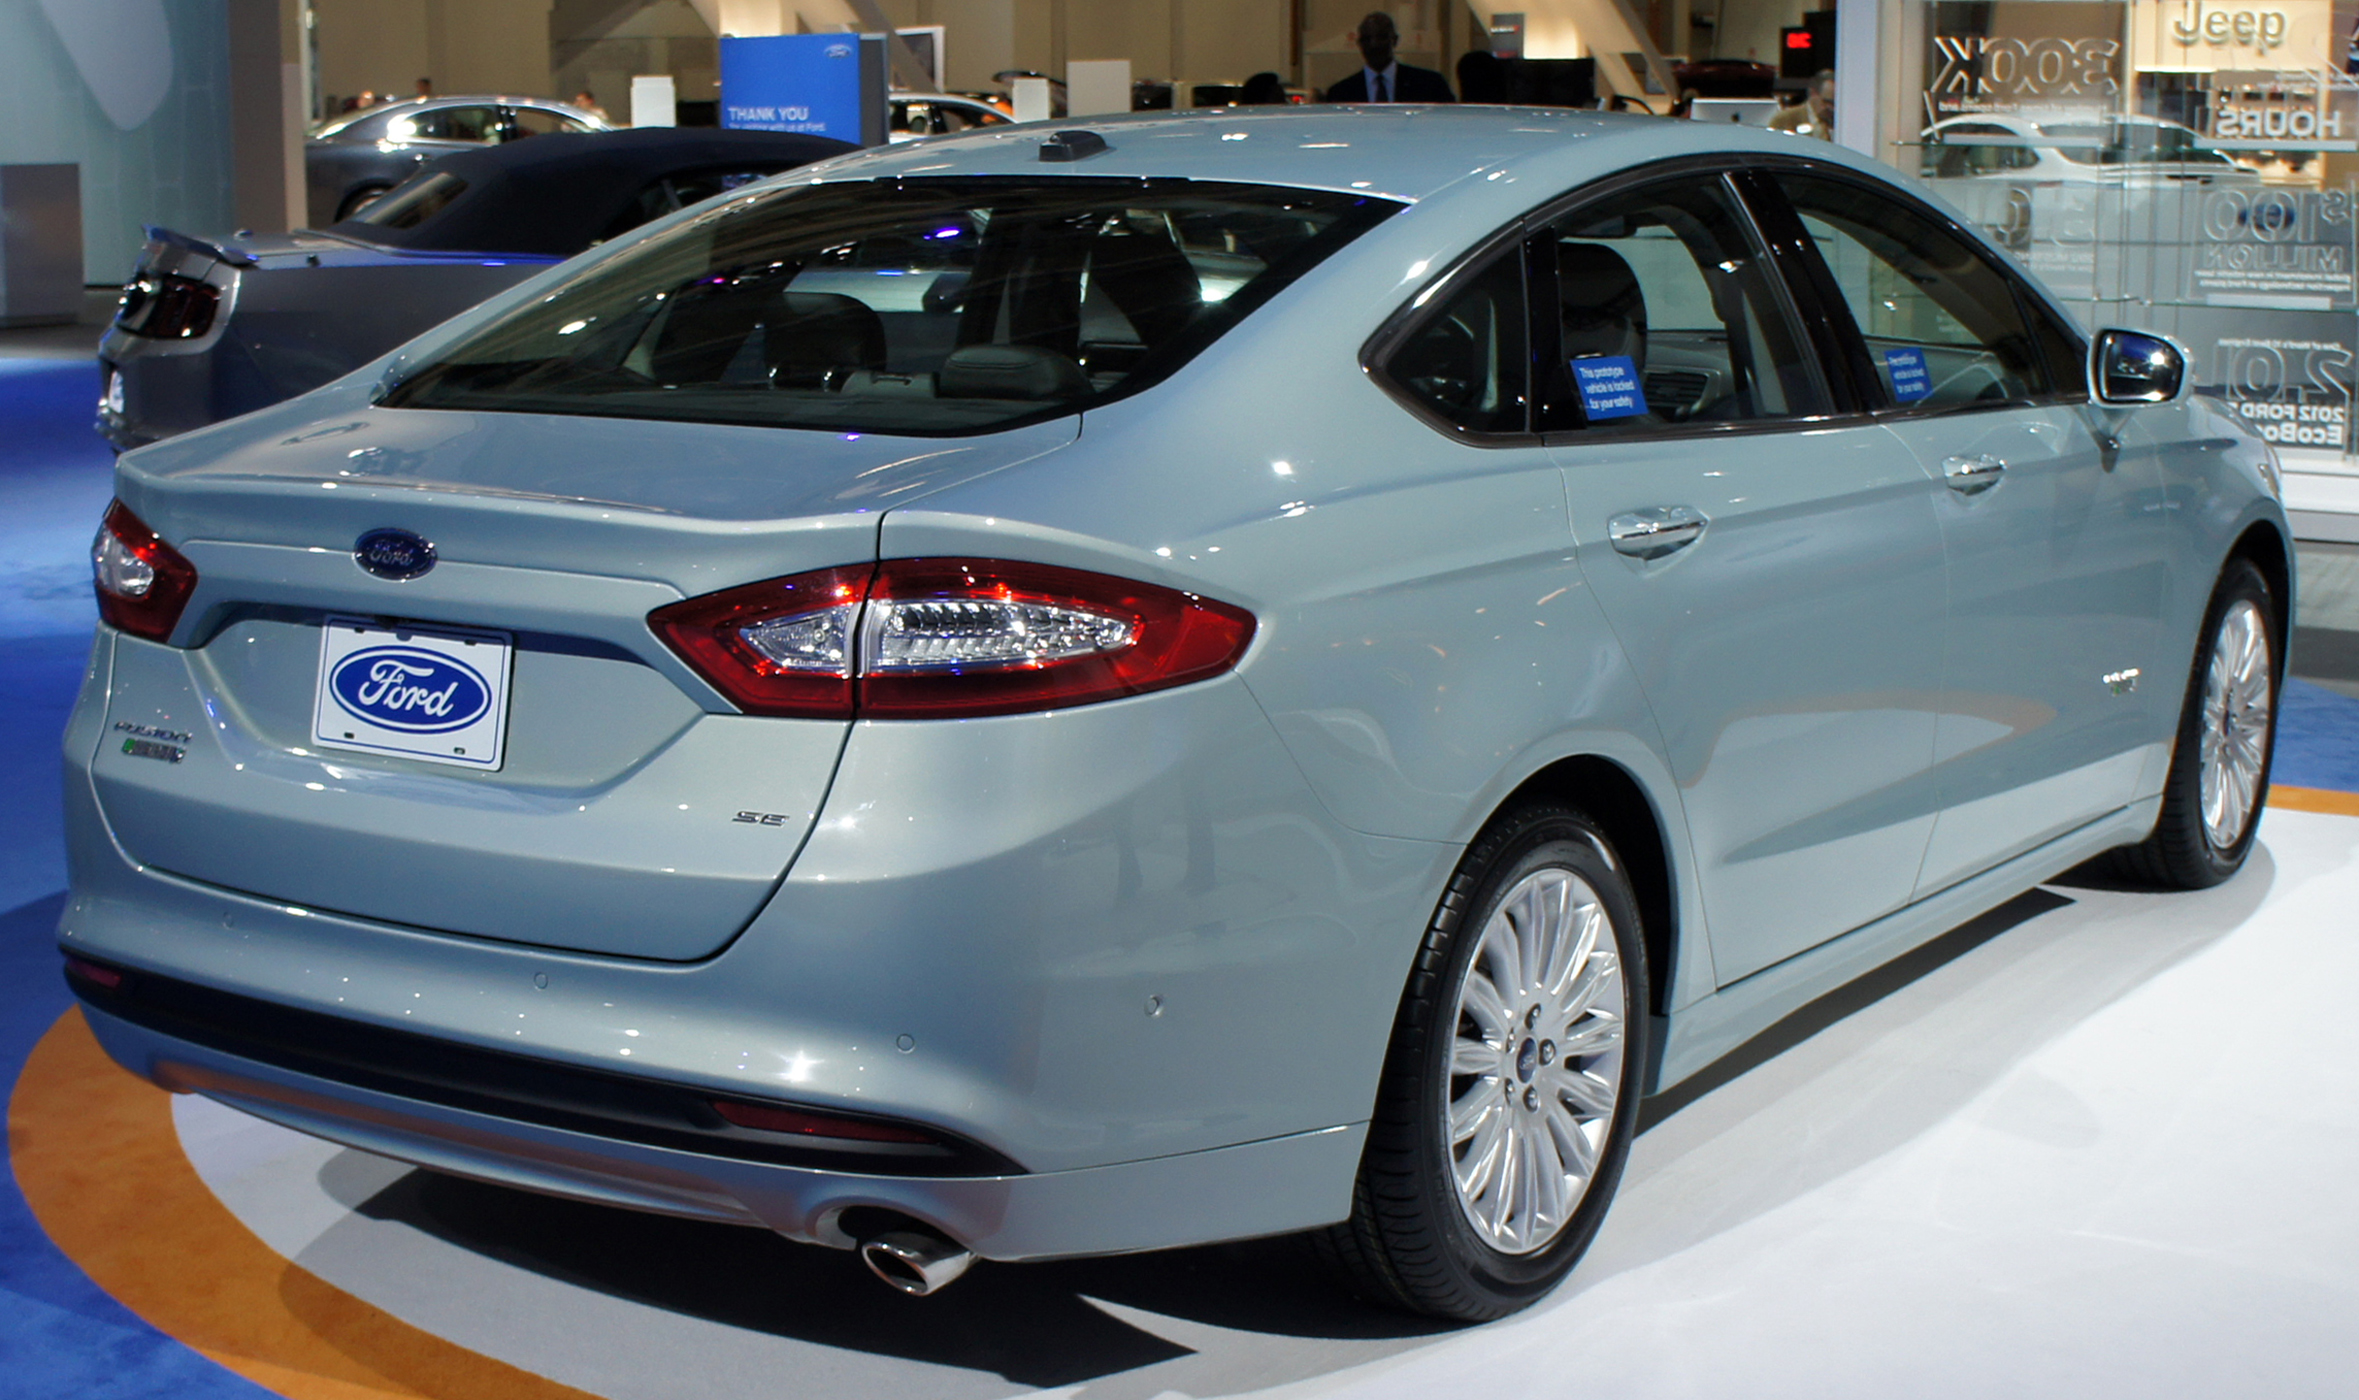 2012 Ford Fusion #12 Ford Fusion #12